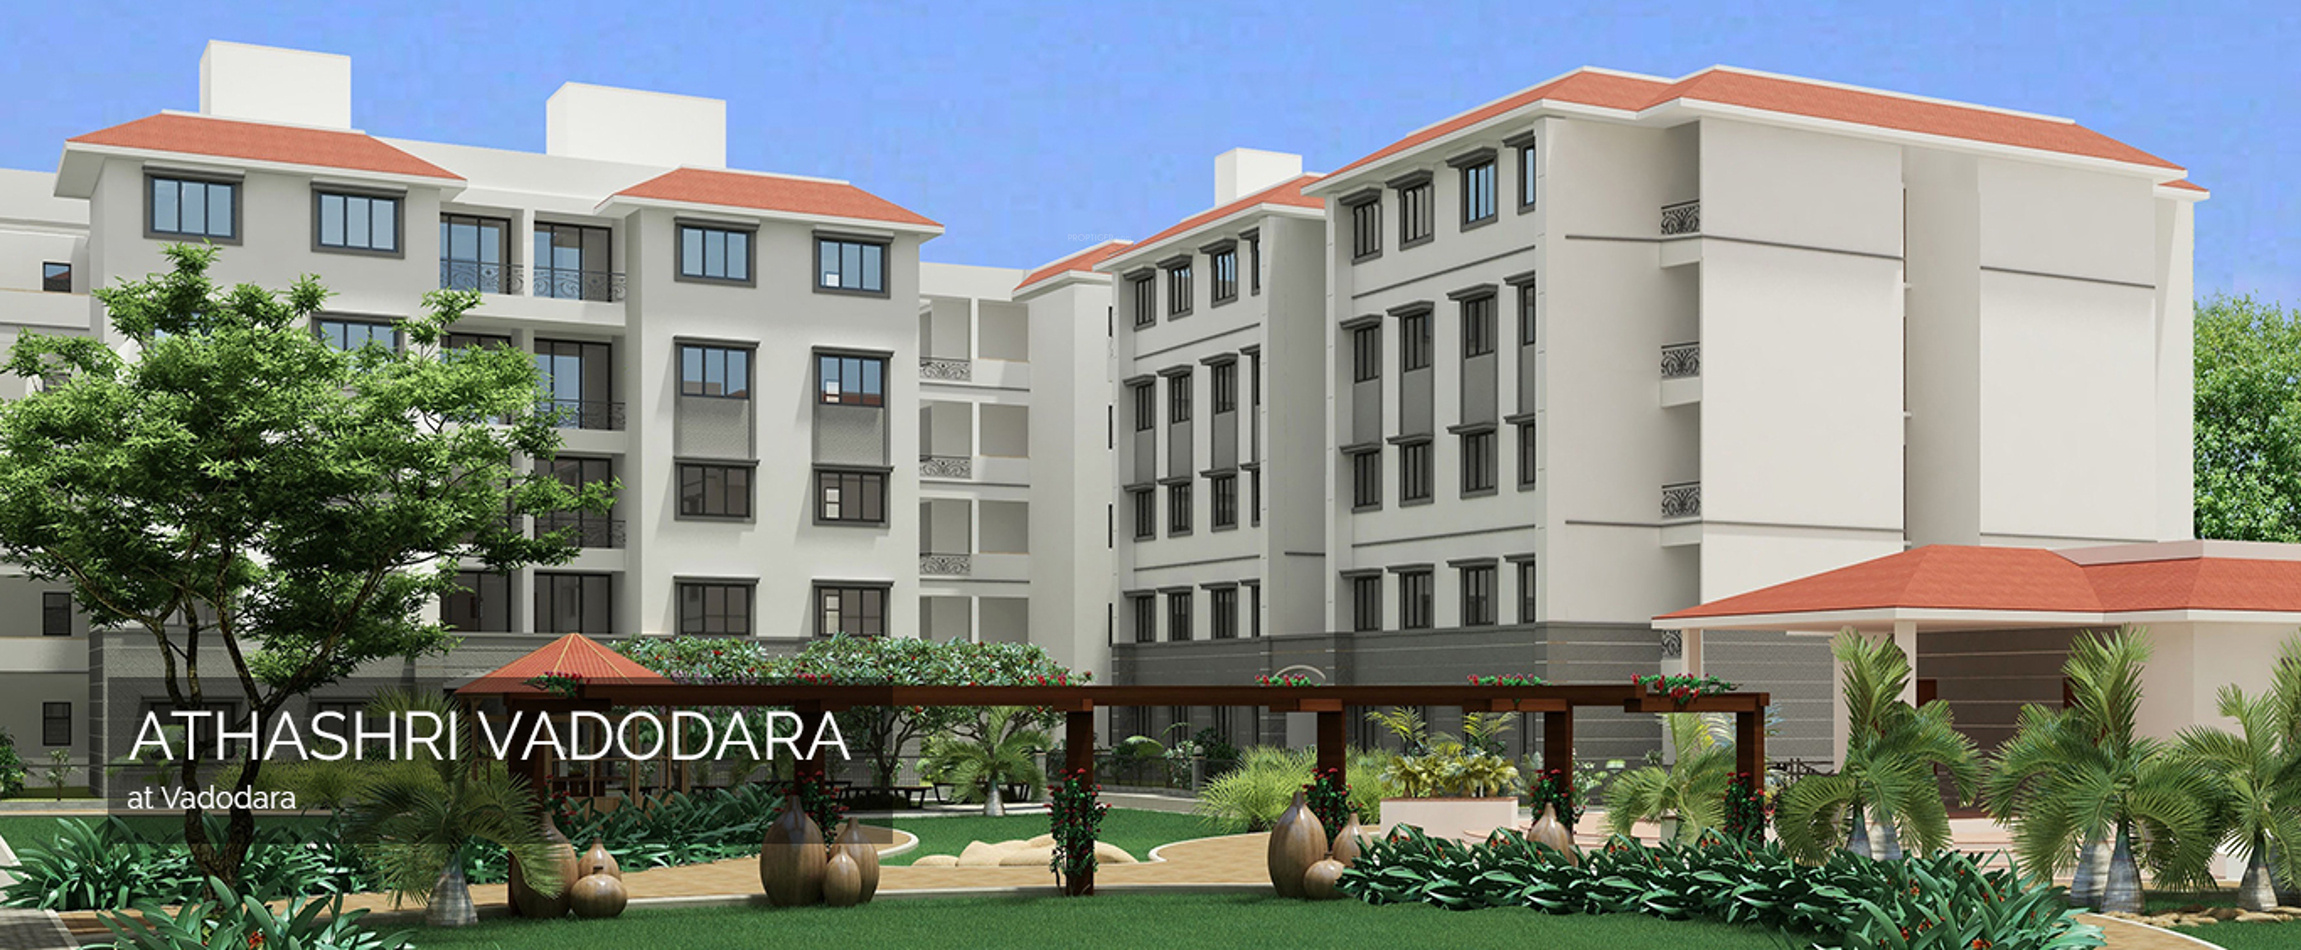 Images for Elevation of Paranjape Schemes Athashri Vadodara